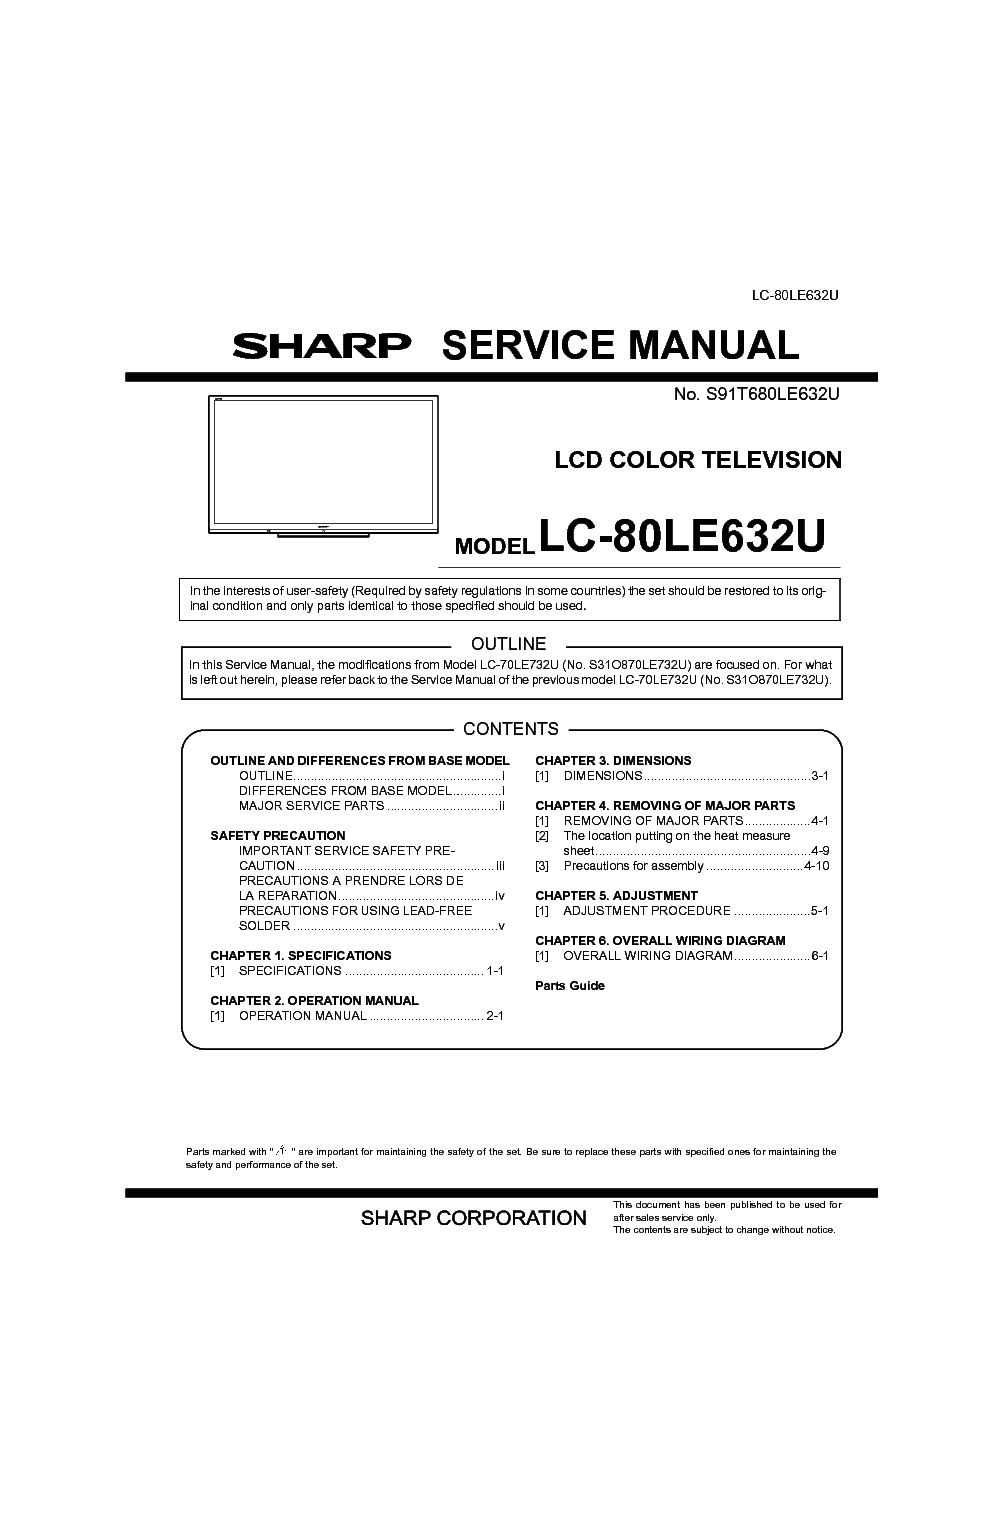 sharp lc 80le632u service manual download schematics eeprom rh elektrotanya com Sharp LC-80LE632U Vesa sharp aquos lc-80le632u manual